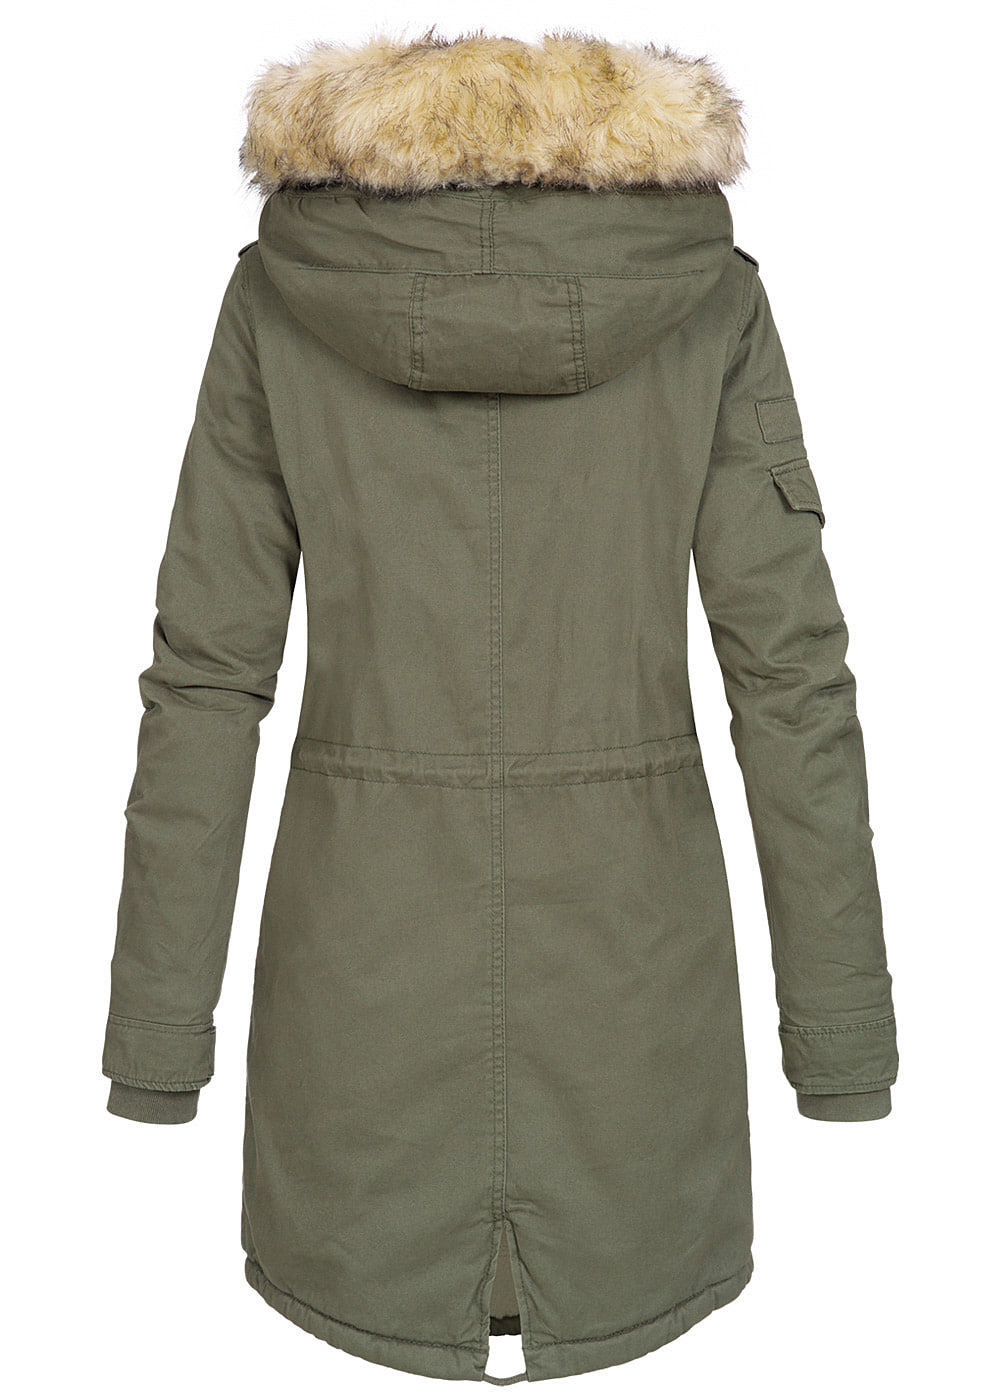 best service 990e4 e2410 ONLY Damen Winterparka Jacke Kapuze 2 Taschen Teddyfell grape leaf olive  grün